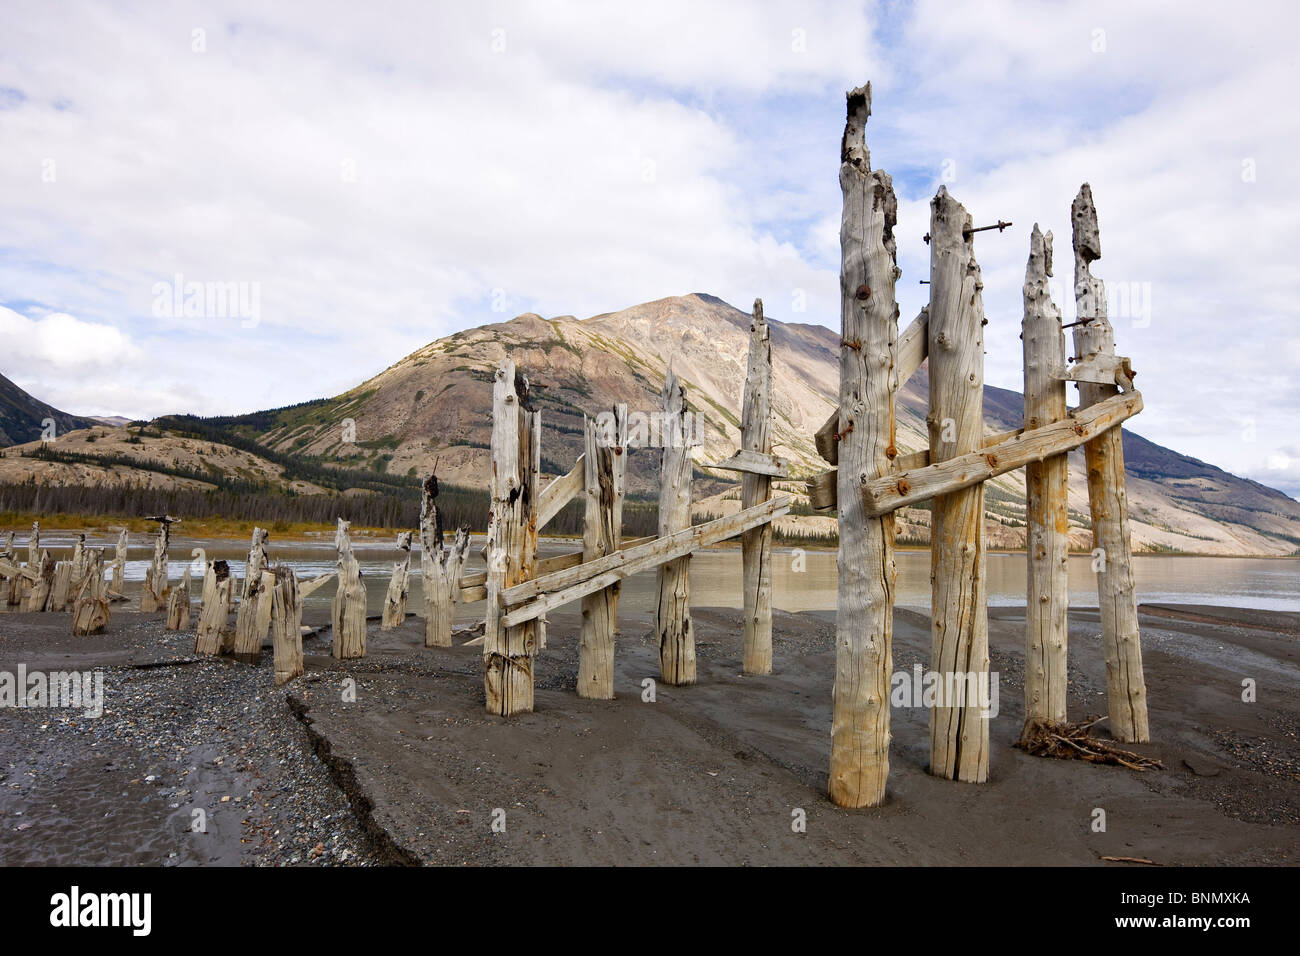 Pillings from the original Slims River Bridge with Sheep Mountain in the background, Kluane National Park, Yukon, - Stock Image